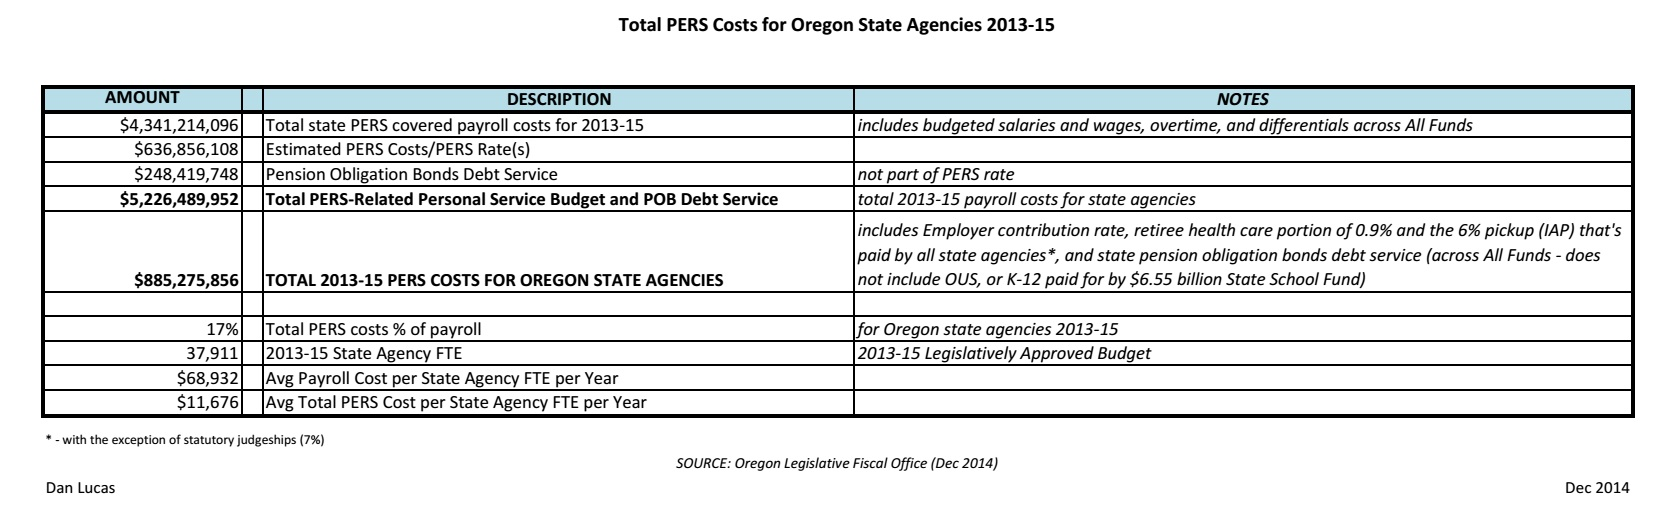 http://www.dan-lucas.com/wp-content/uploads/2014/12/Total-PERS-Costs-for-Oregon-State-Agencies-2013-15_chart1.jpg